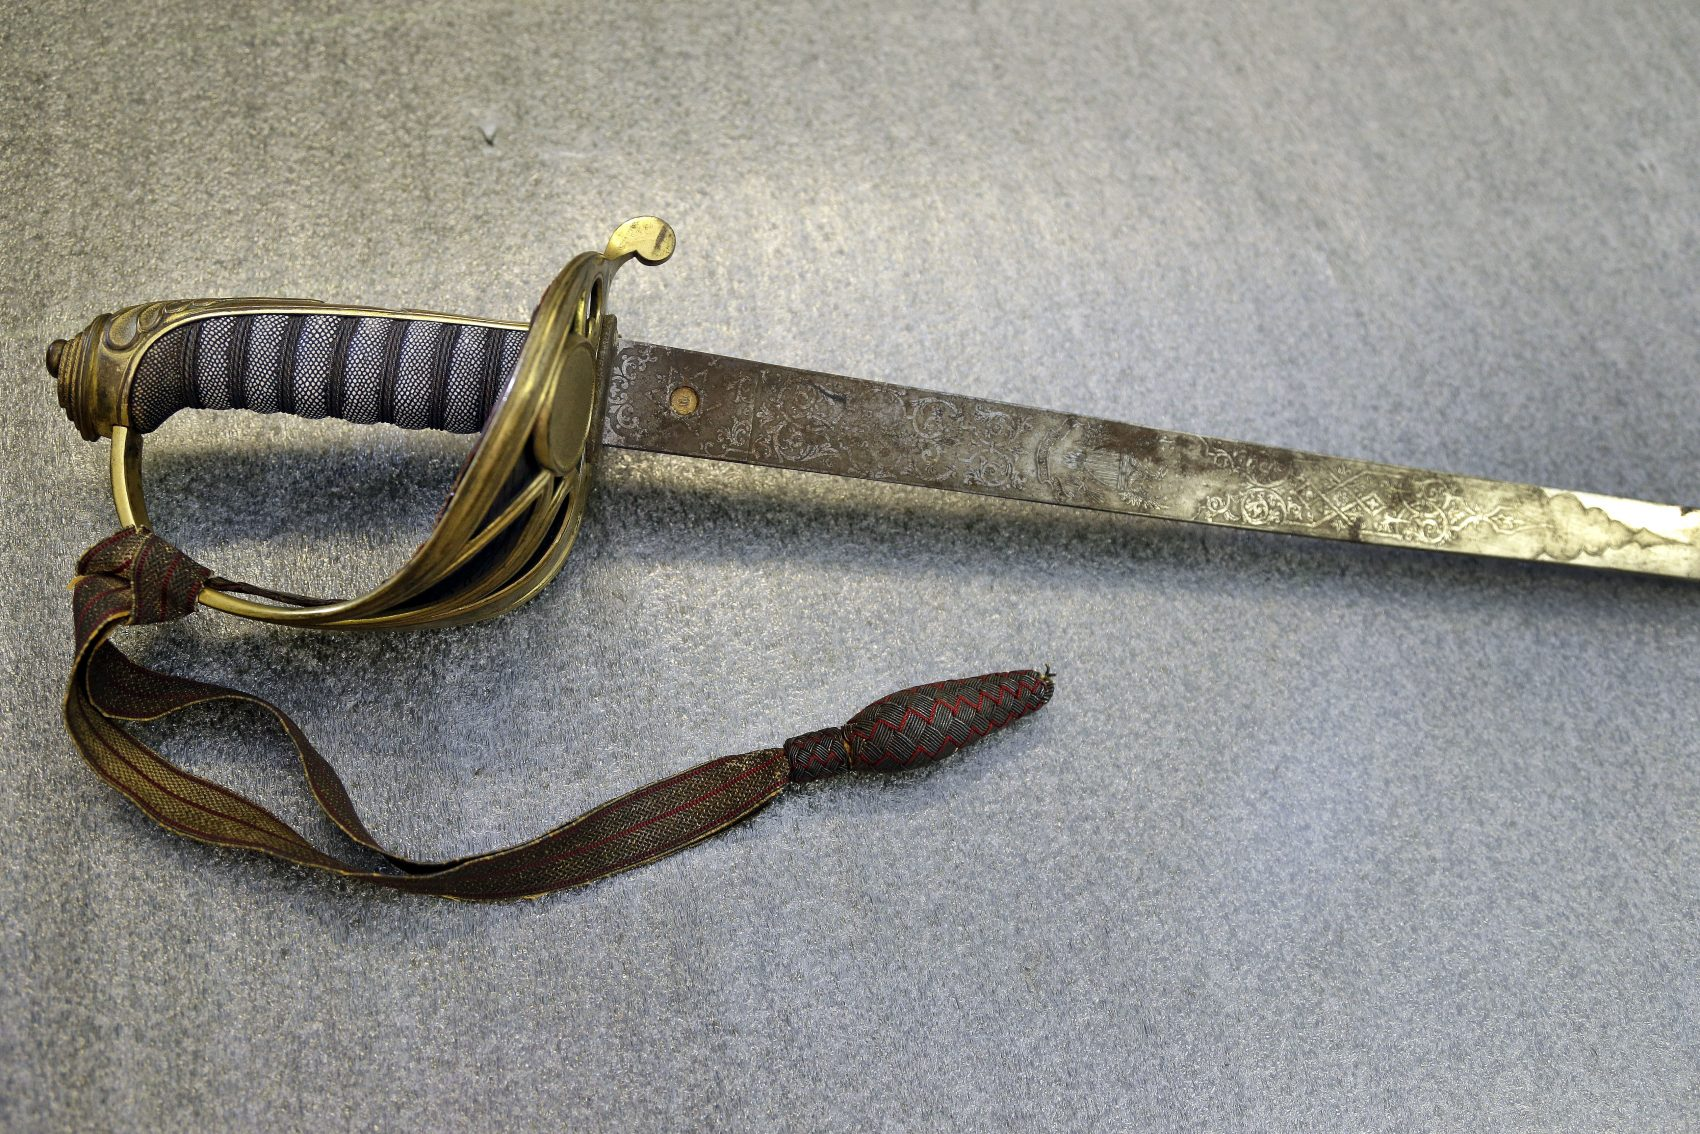 The sword that belonged to Col. Robert Gould Shaw, the commanding officer of the first all-black regiment raised in the North during the Civil War. Stolen after Shaw was killed during the 54th Massachusetts Voluntary Infantry's attack on Fort Wagner, South Carolina in 1863, the sword was recently found in the attic of a Boston-area home. (Elise Amendola/AP)